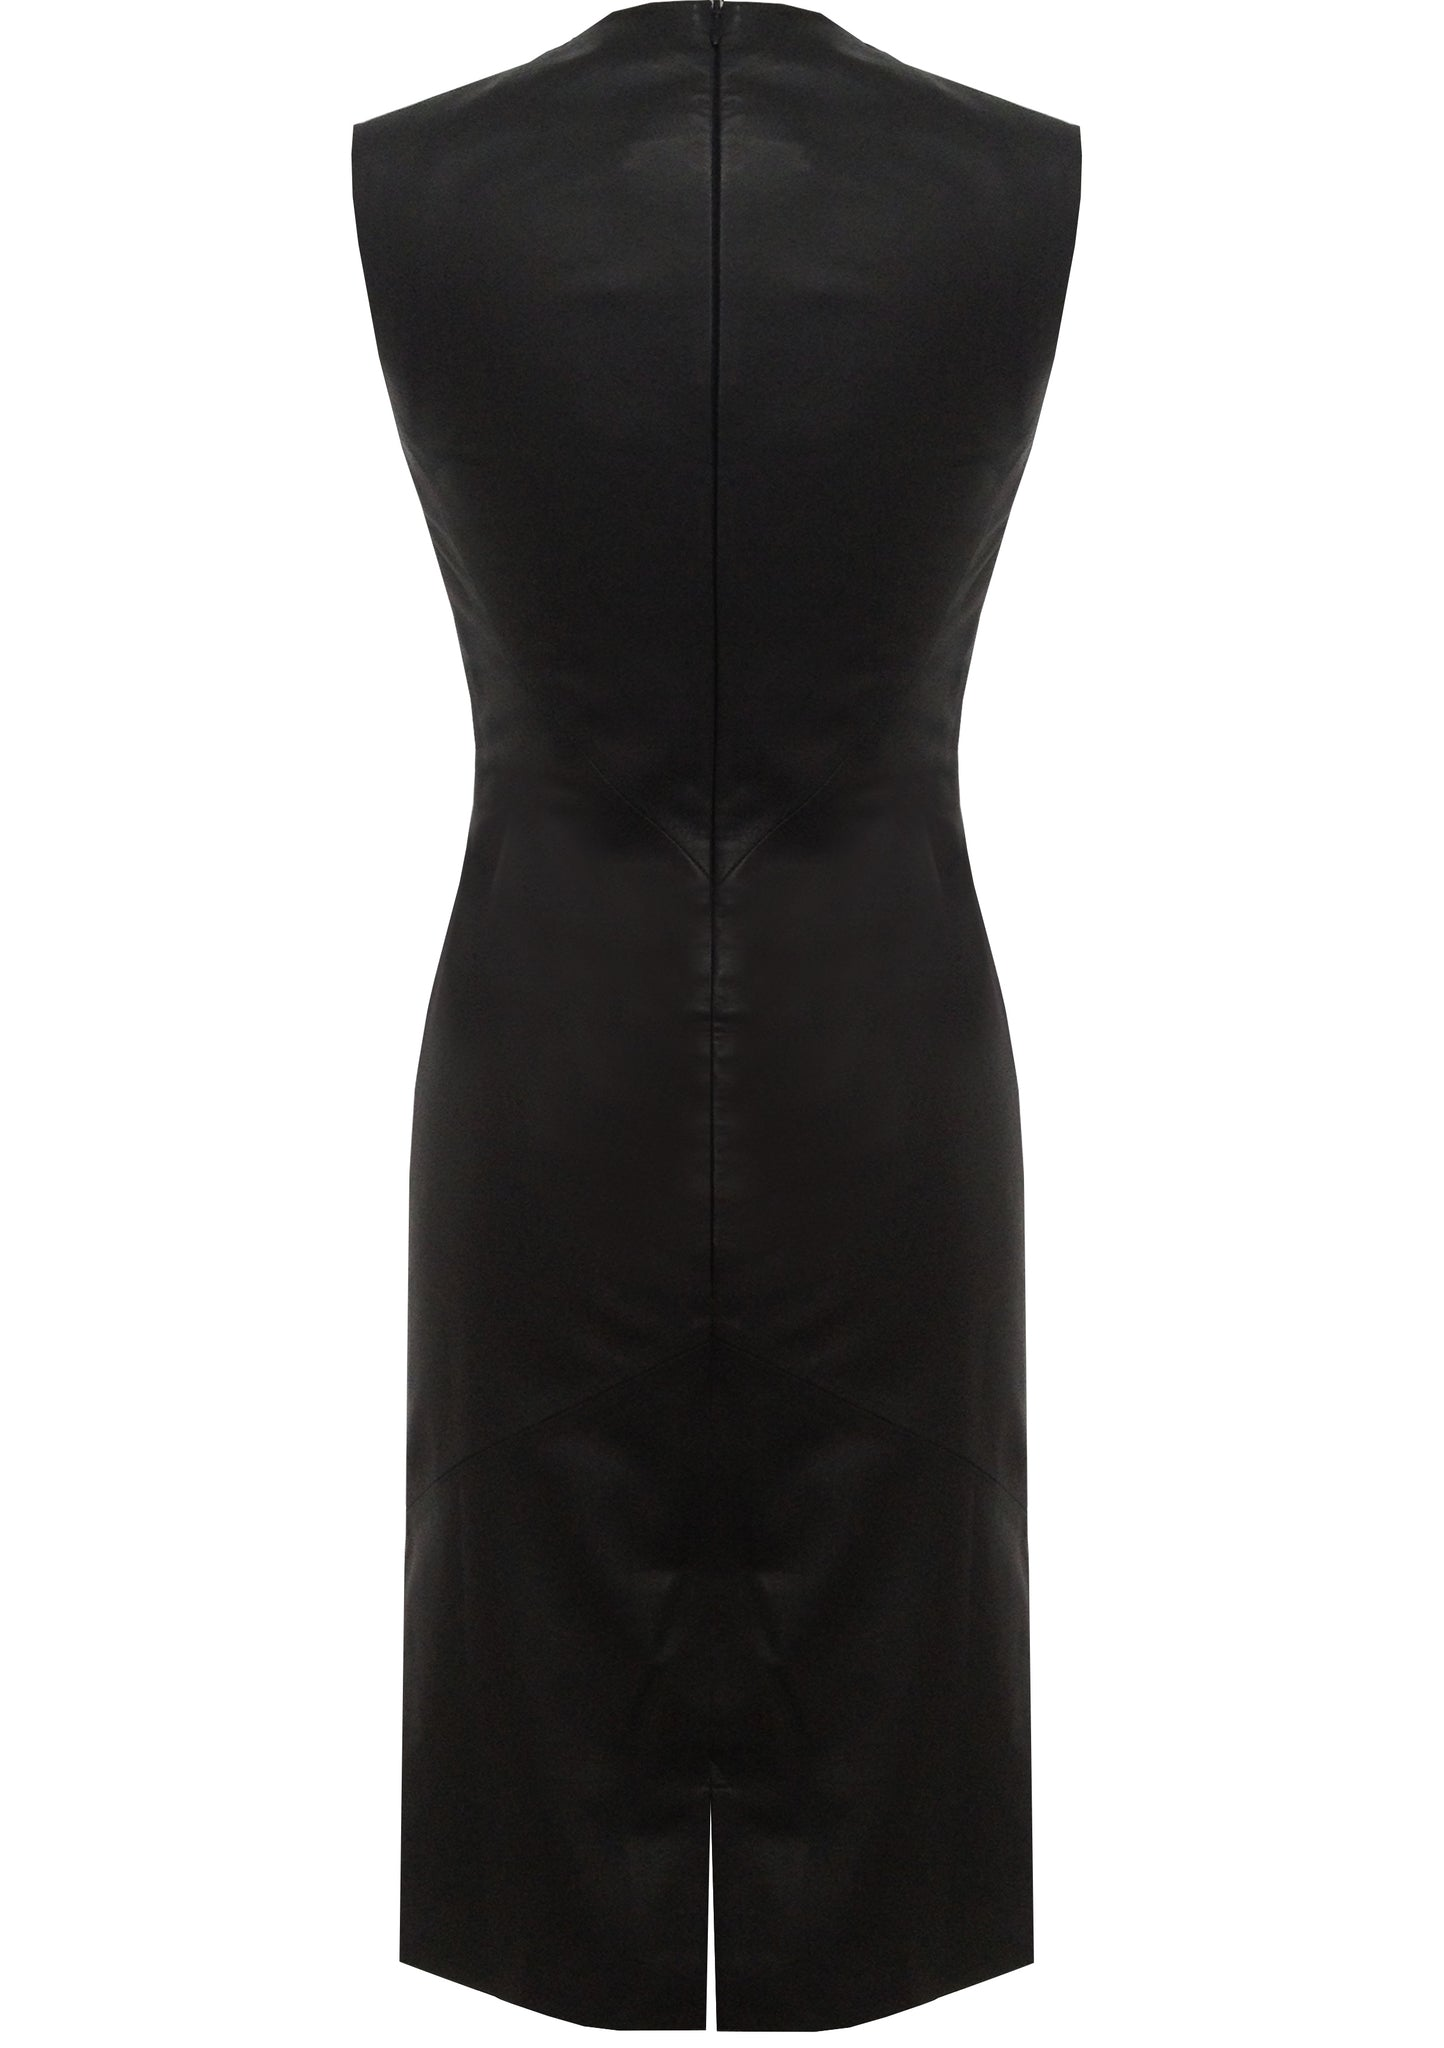 Classic pencil, sleeveless and knee-length, black leather dress